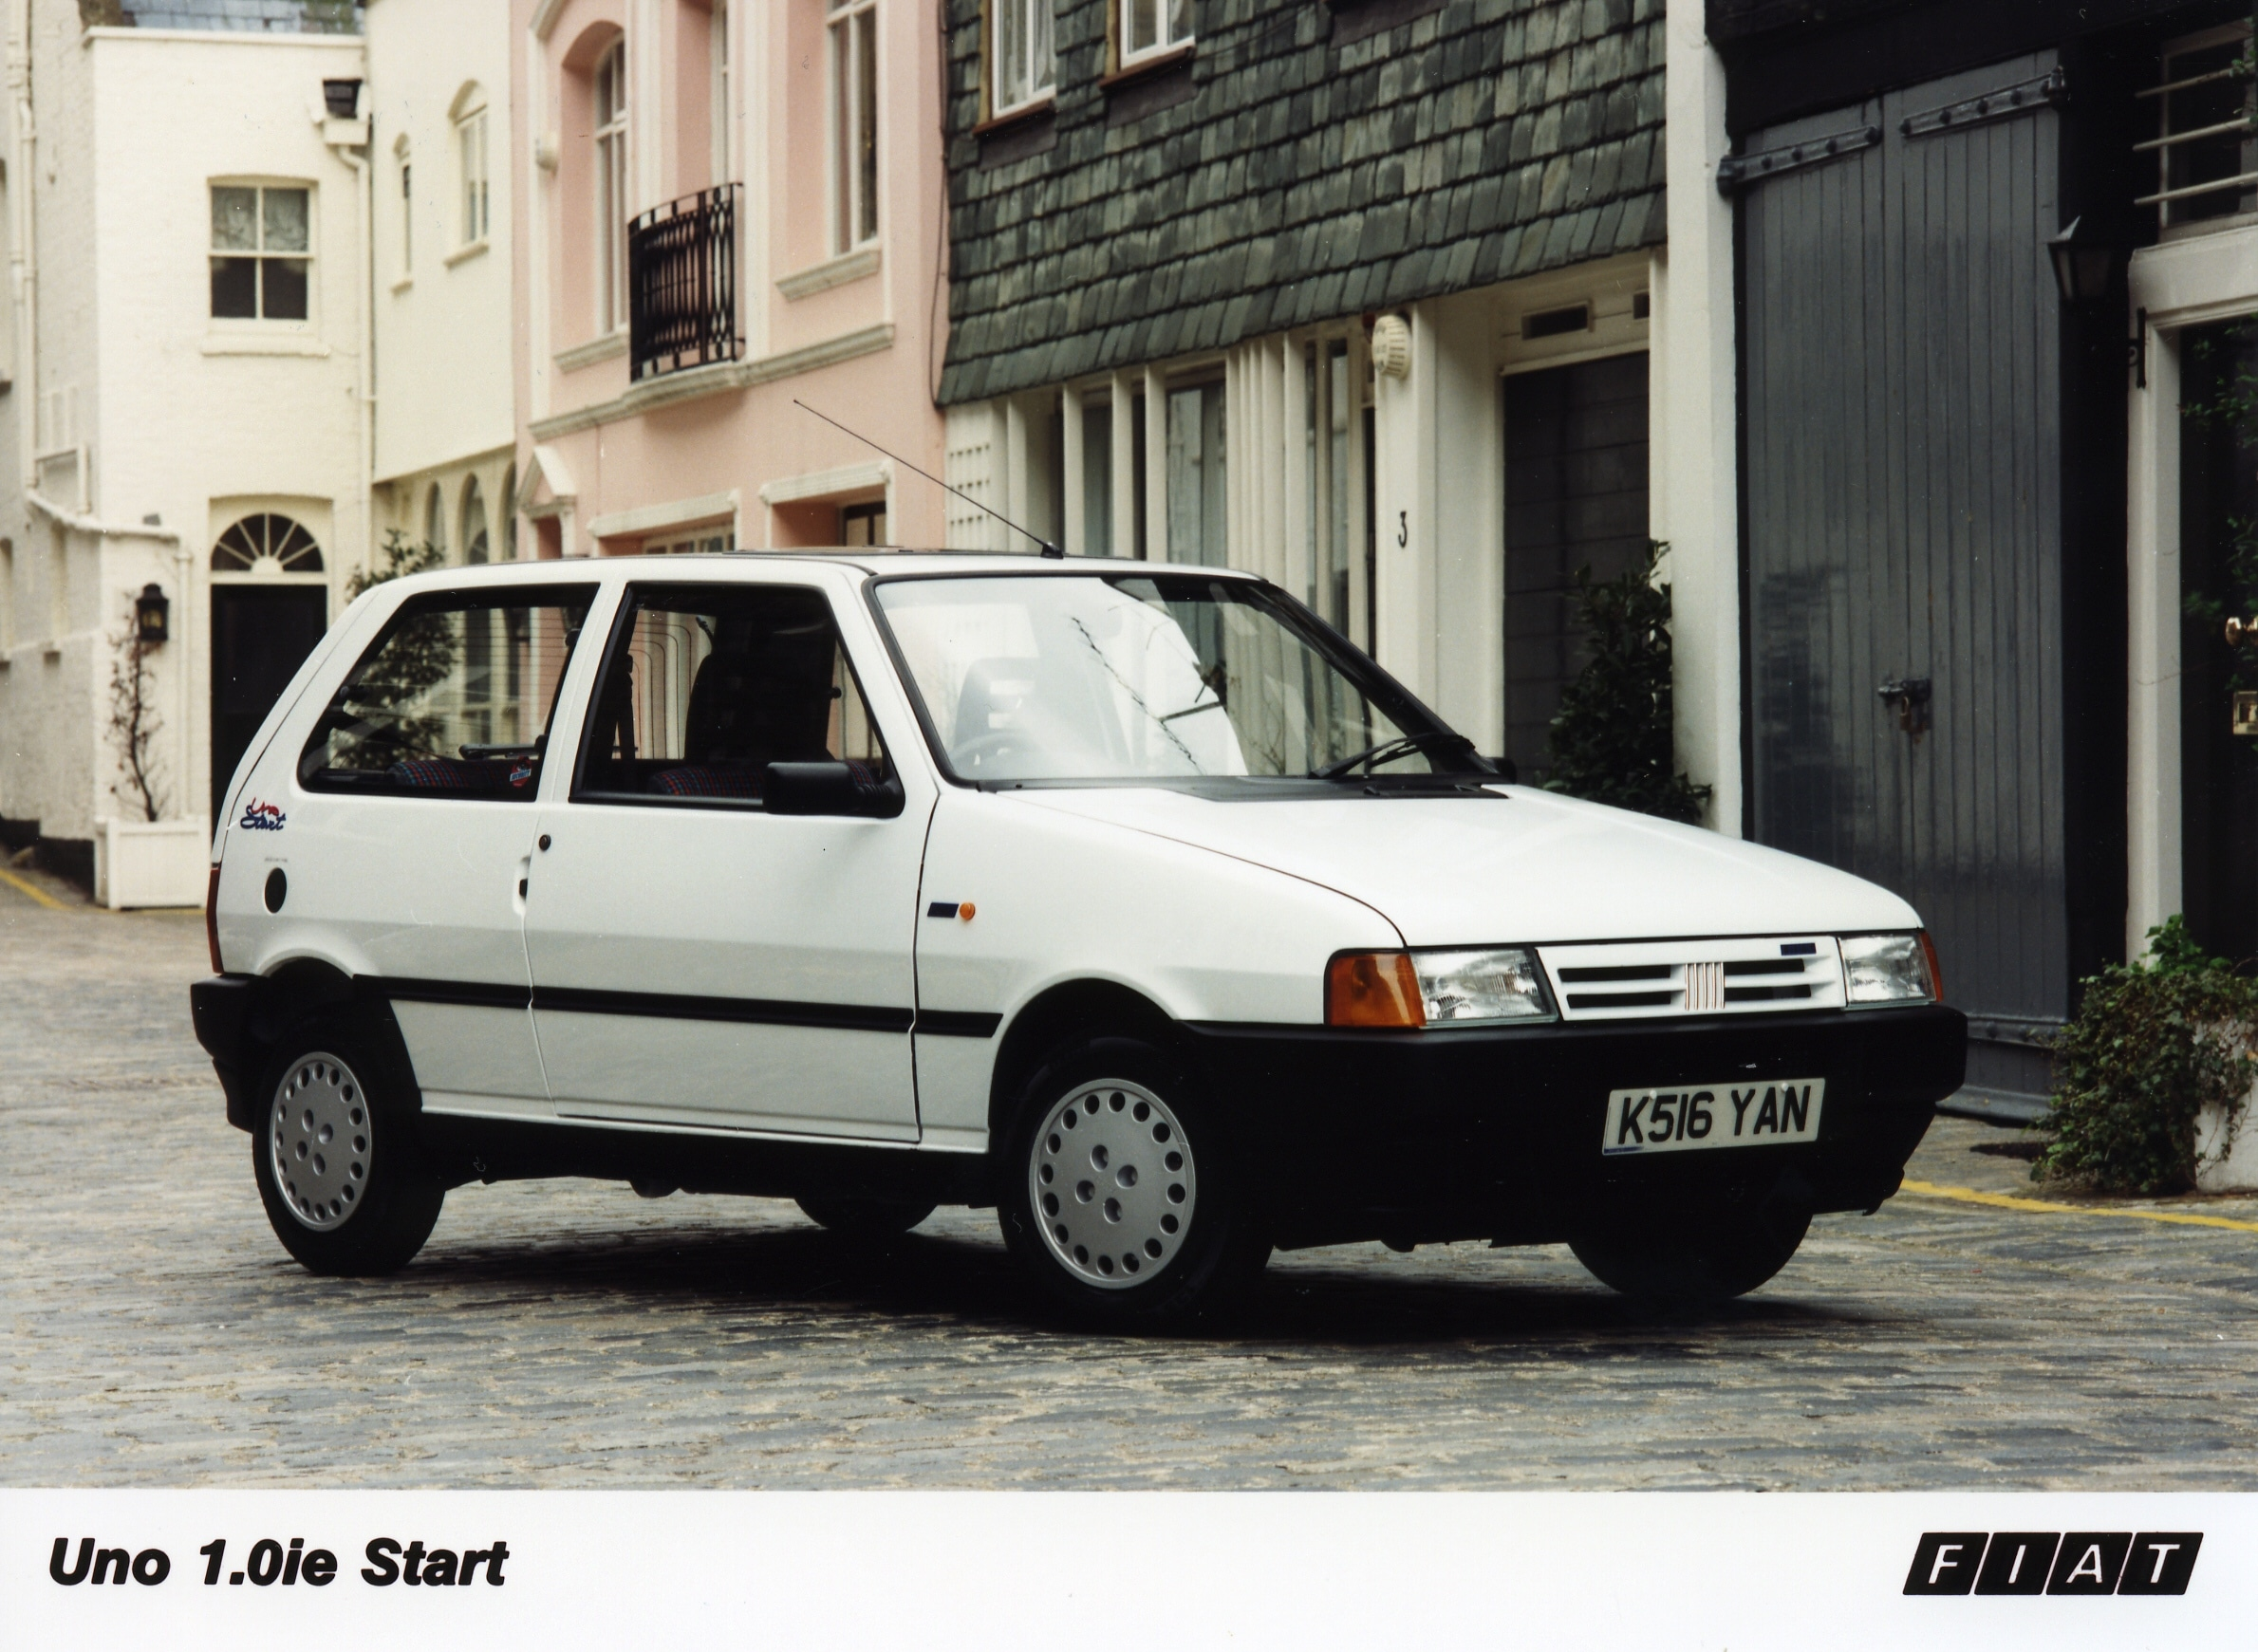 fiat uno, ford sierrs, ford, fiat, citroen, citroen saxo, nissan, nissan terrano, nissan primera, primera, terrano, vauxhall, vauxhall calibra, claibra, astramax, vauxhall astramax, bedford, bedford astramax, proton, proton mpi, toyota, toyota carina, car, classic car, retro car, motoring, automotive, ebay, ebay motors, autotrader, retro car, featured, not2grand, www.not2grand.co.uk, adrian flux,motoring, automotive, mazda, mazda 323, volkswagen, volkswagen bora